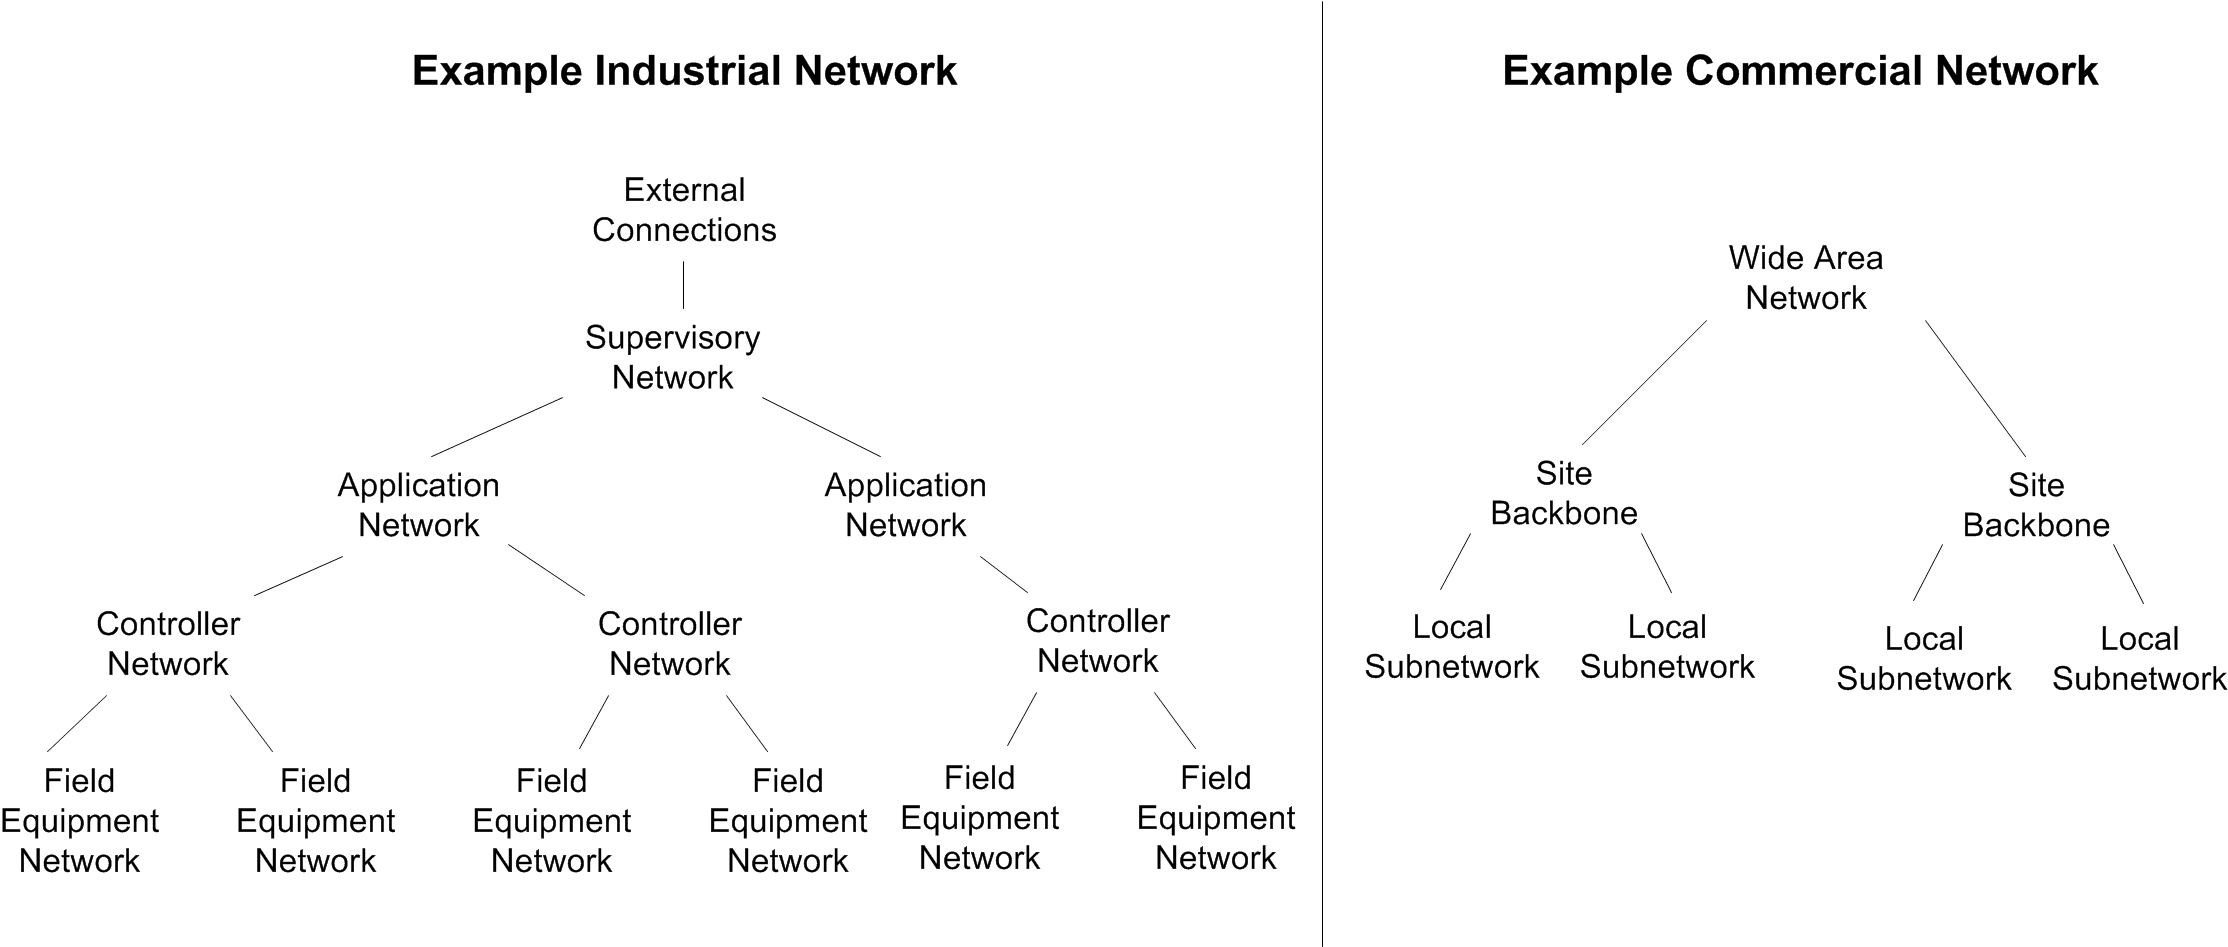 3 Fig. 1. Illustration of the difference in industrial and commercial network architectures A general rule is that response time should be less than the sample time of data being gathered.